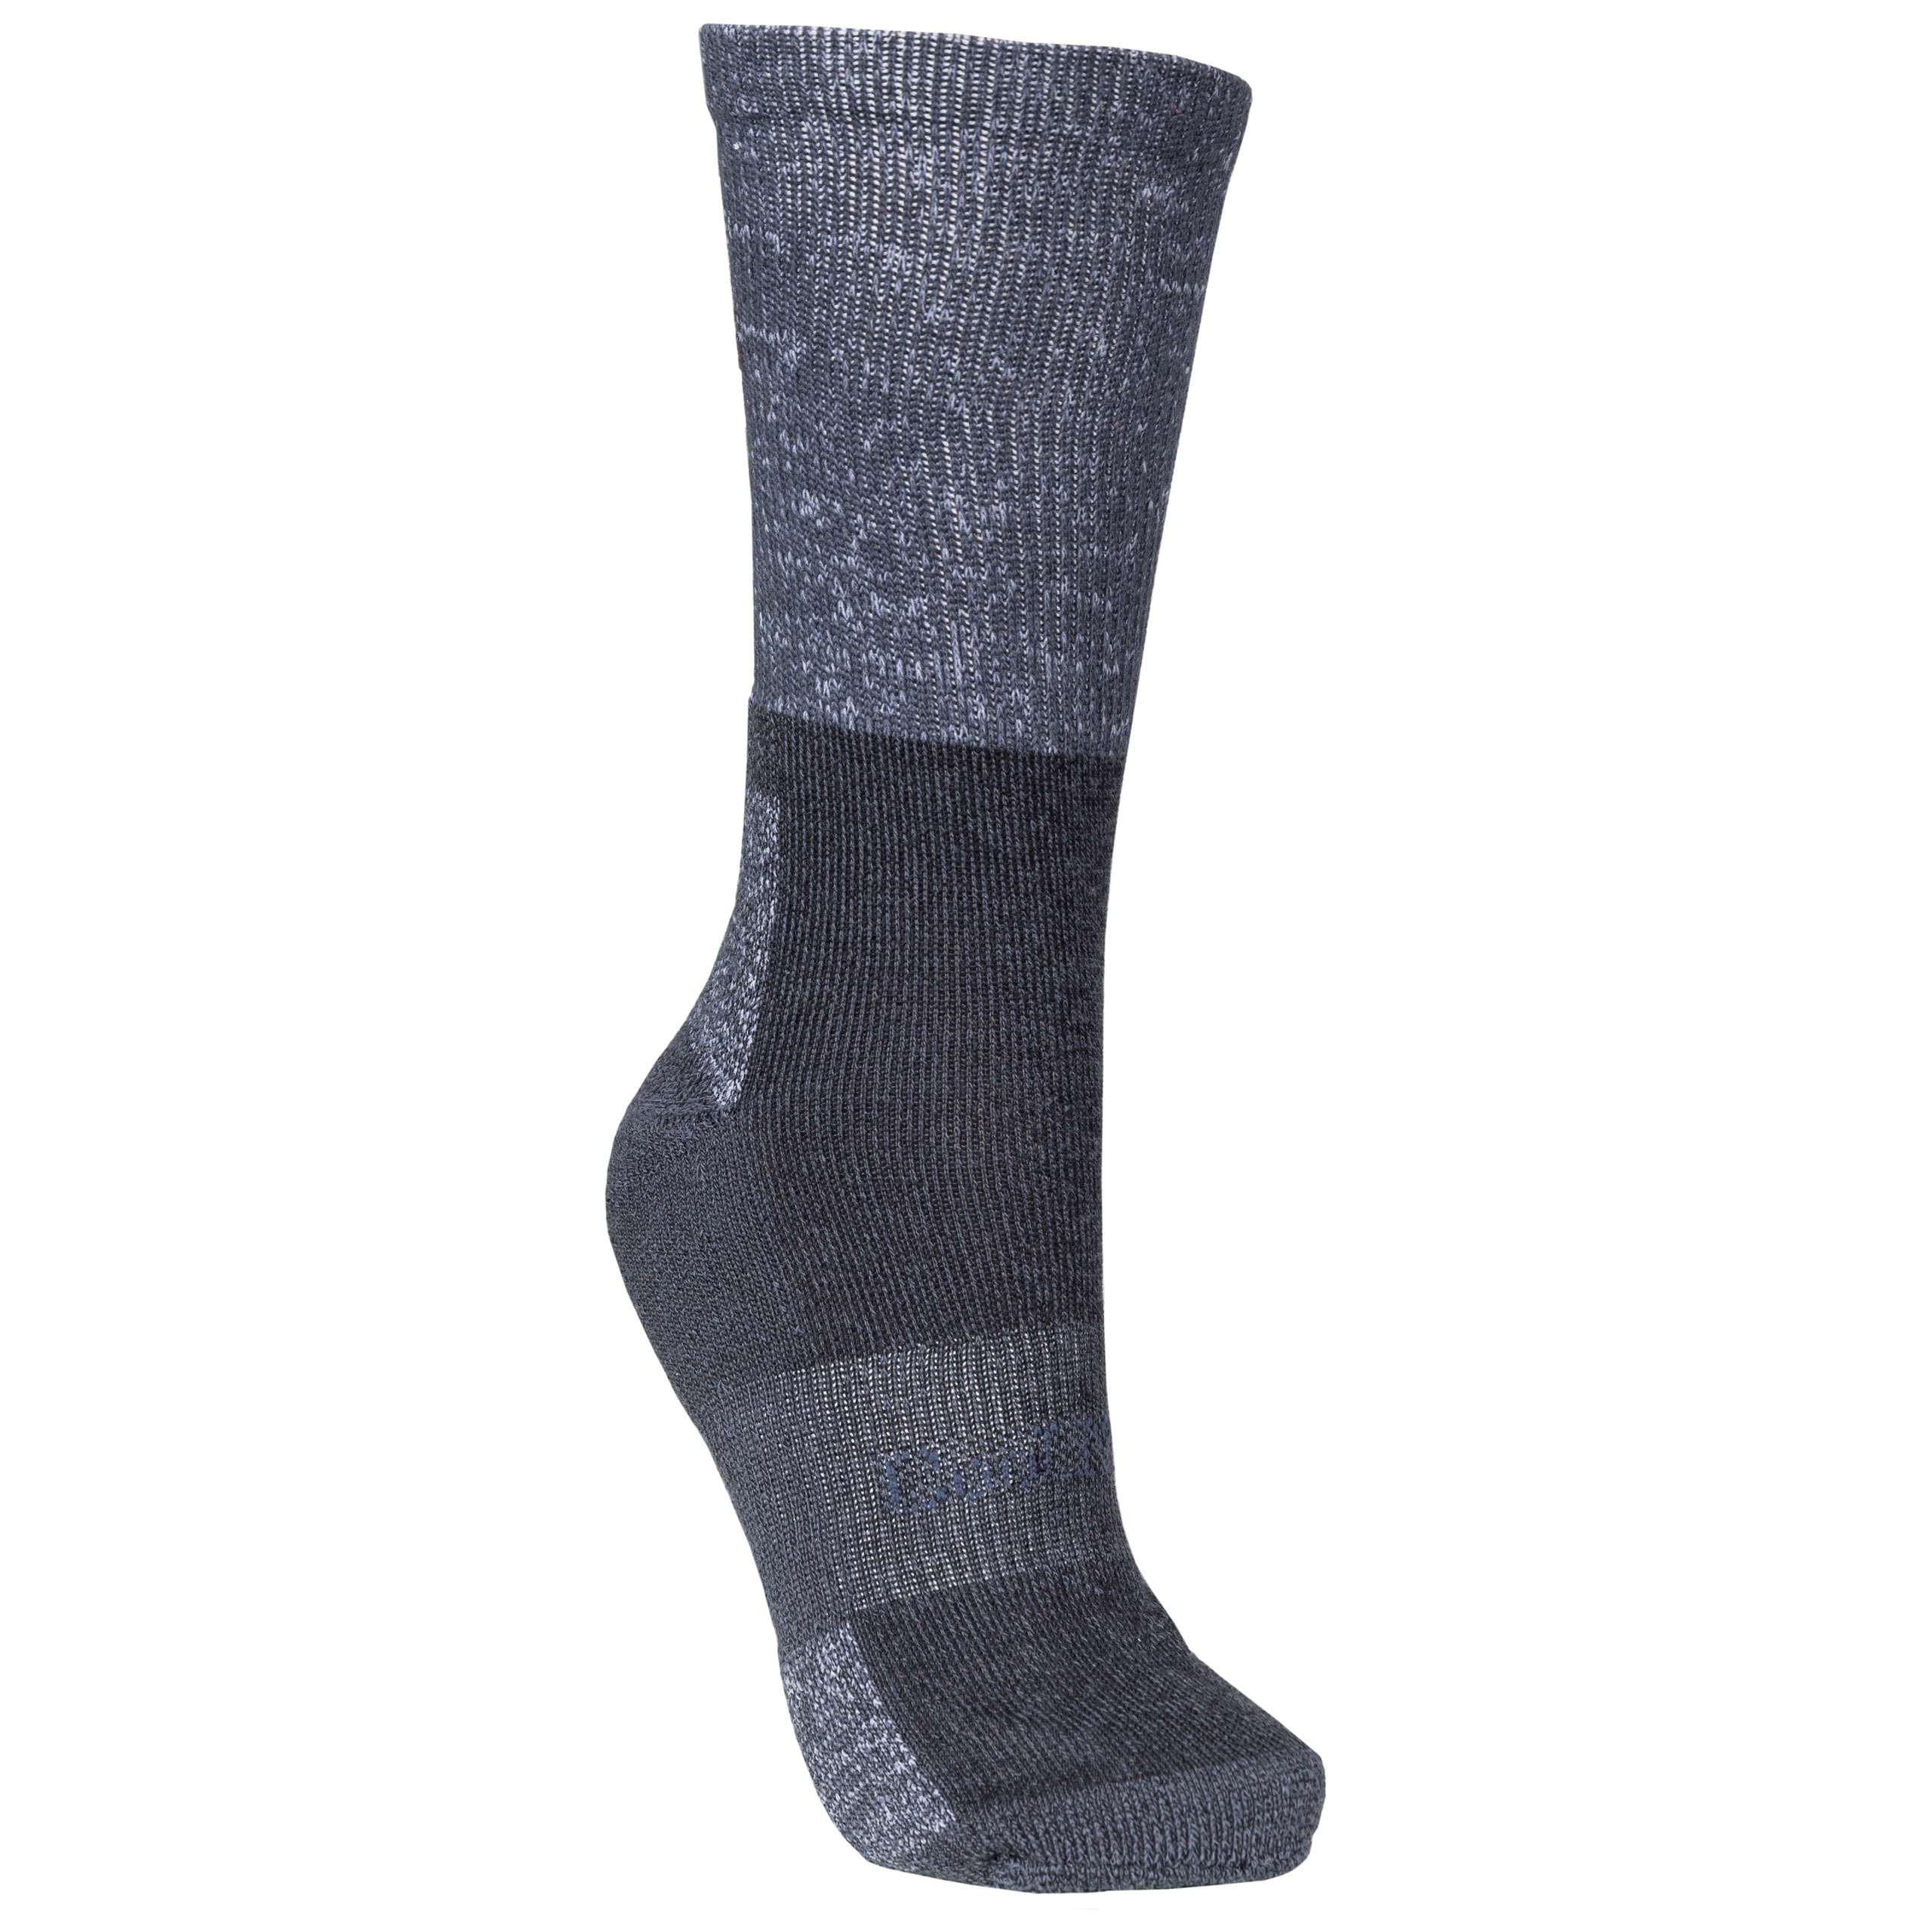 Leader Womens Walking Socks